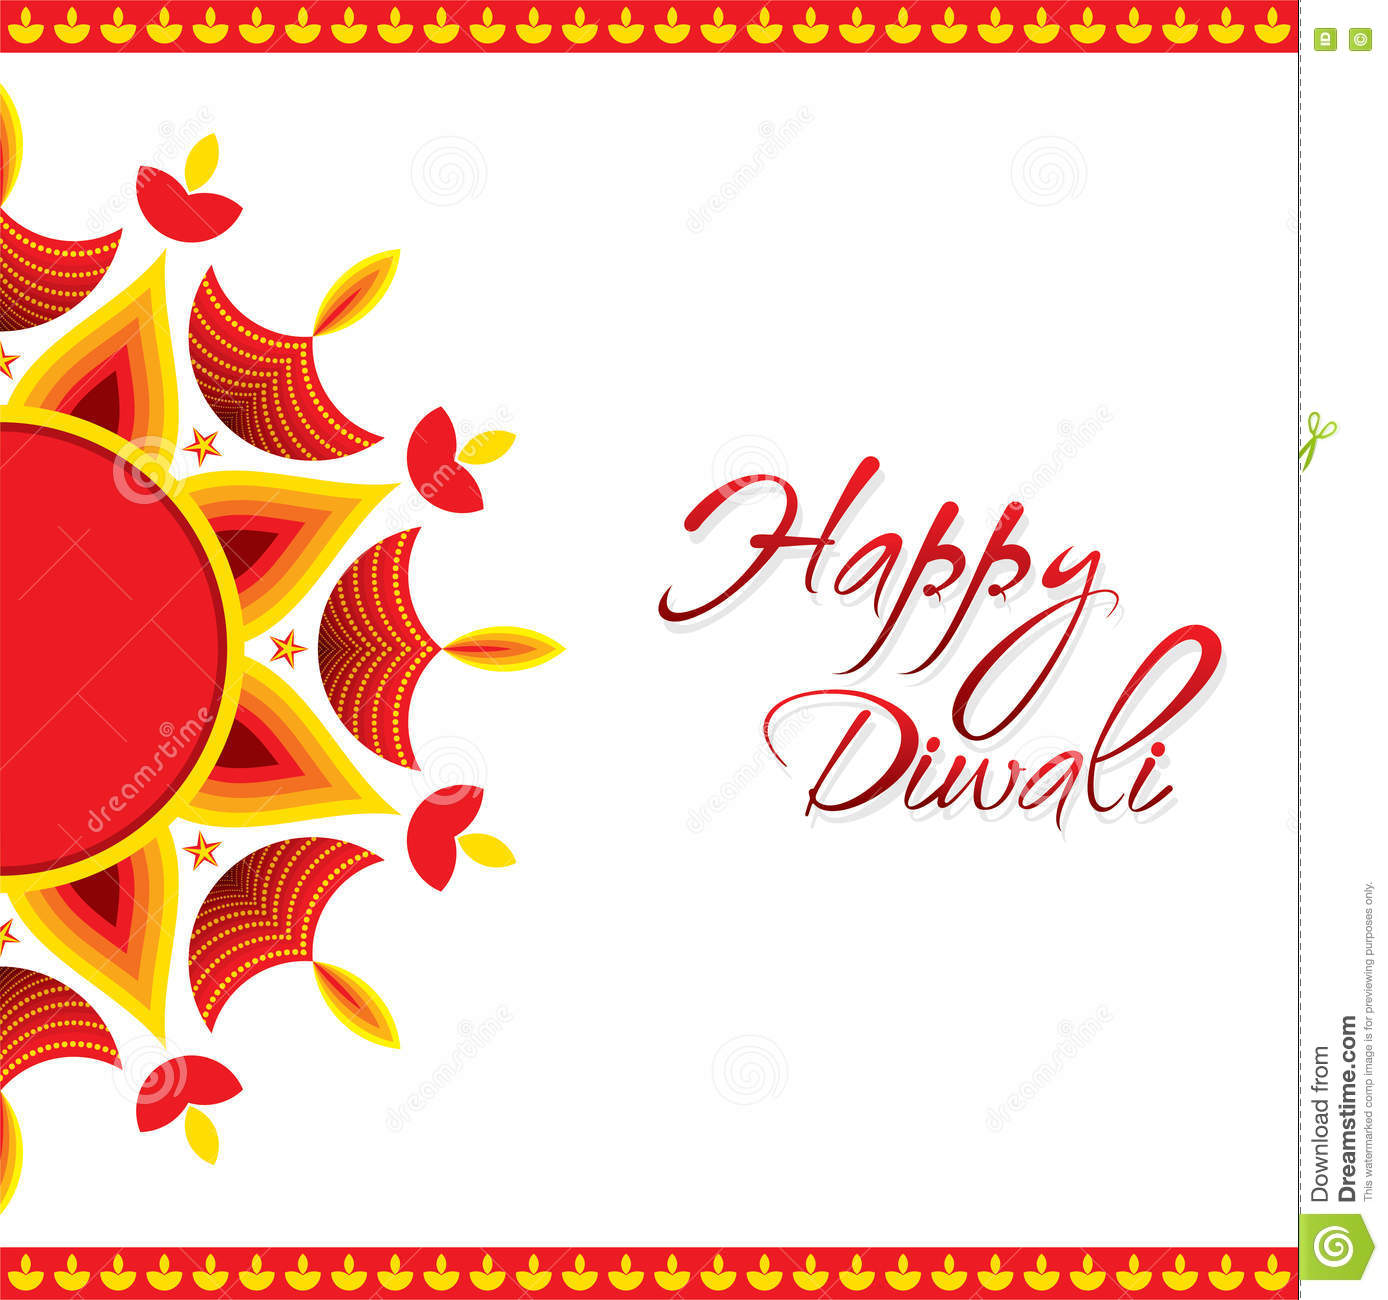 Diwali clipart at getdrawings free for personal use diwali 1388x1300 28 collection of diwali greeting card clipart high quality m4hsunfo